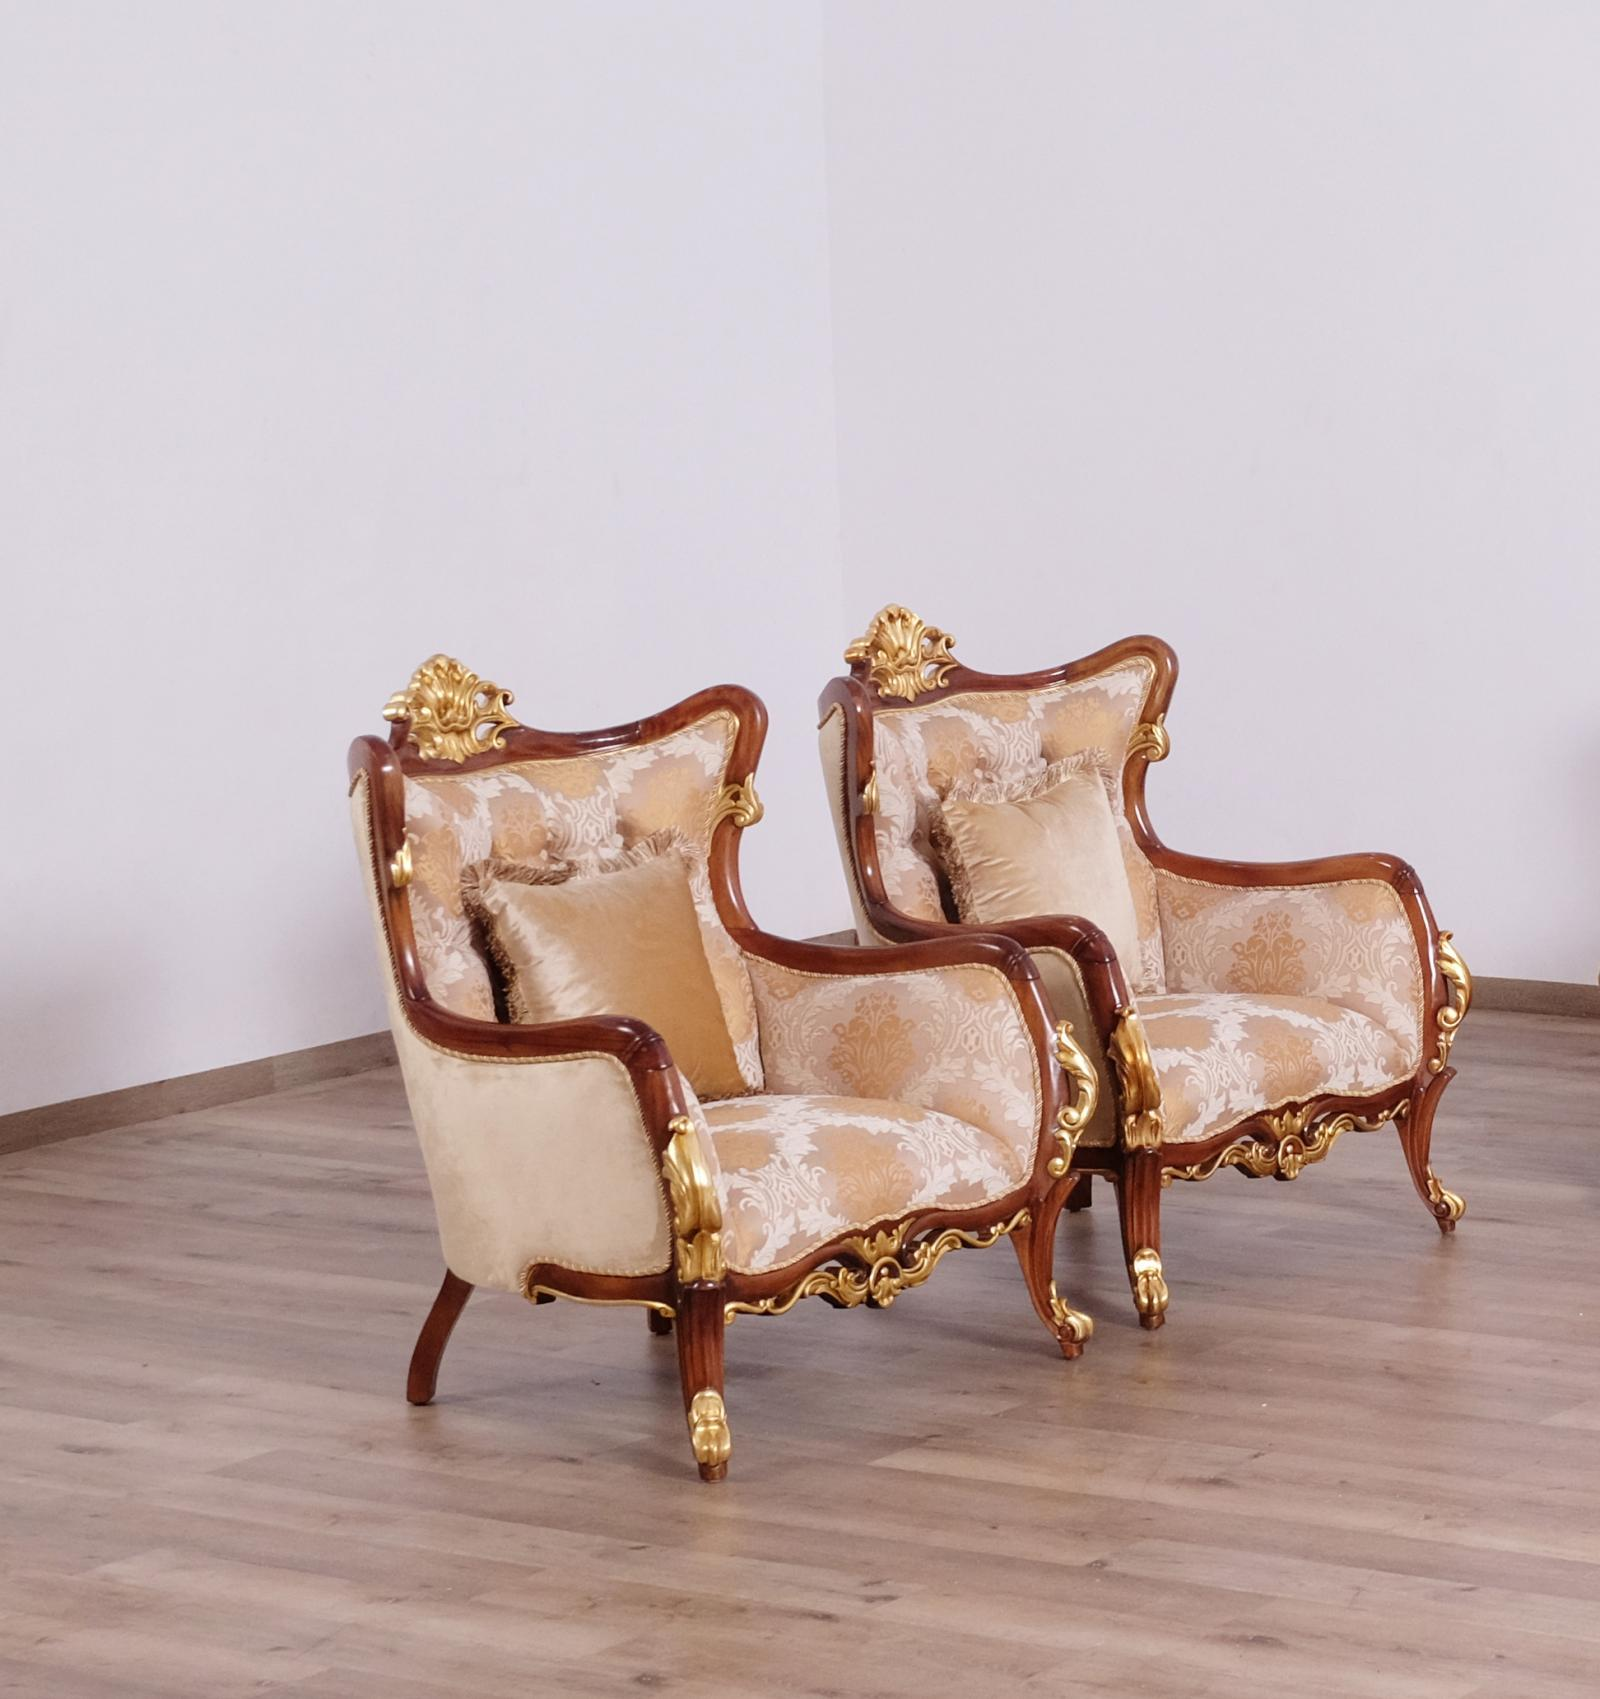 Classic  Traditional Gold  Walnut  Antique Wood  Solid Hardwood and Fabric Arm Chair Set EUROPEAN FURNITURE 47078-C-Set-2